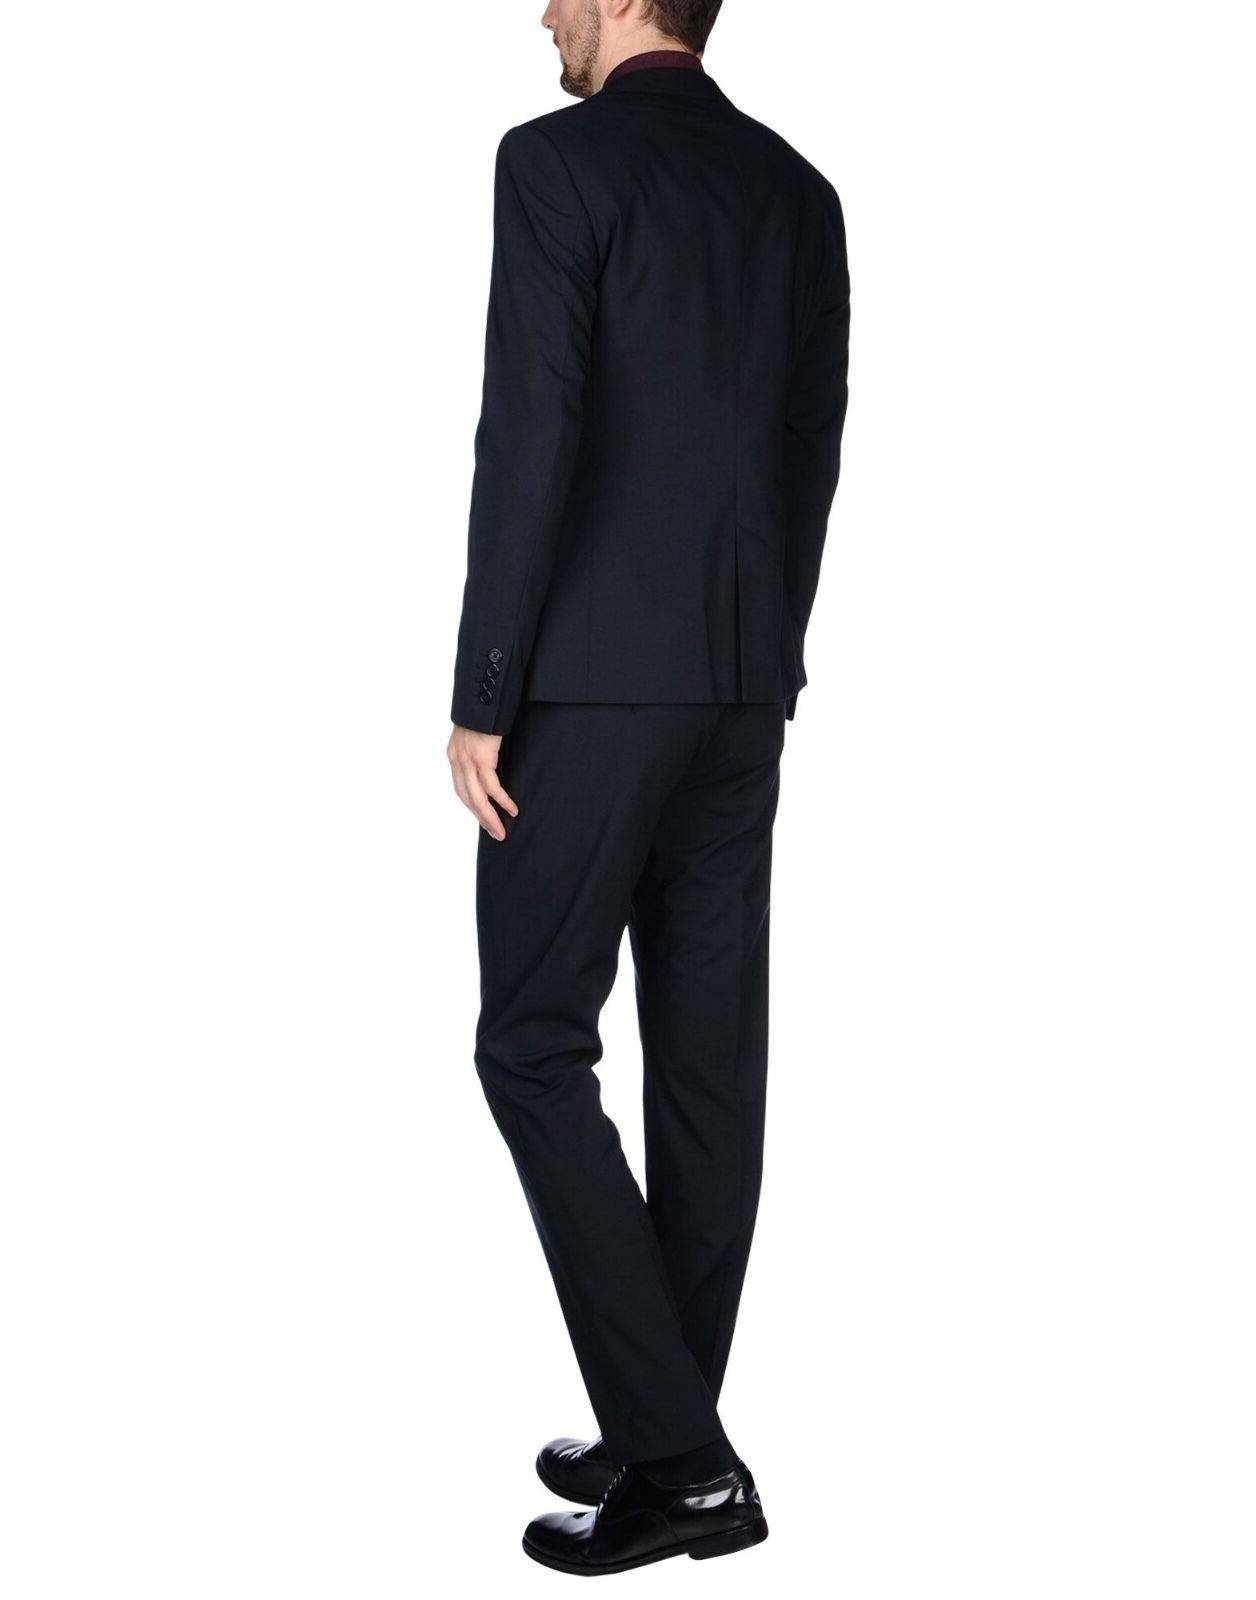 BIKKEMBERGS Lapel Single-Breasted Navy NWT $524